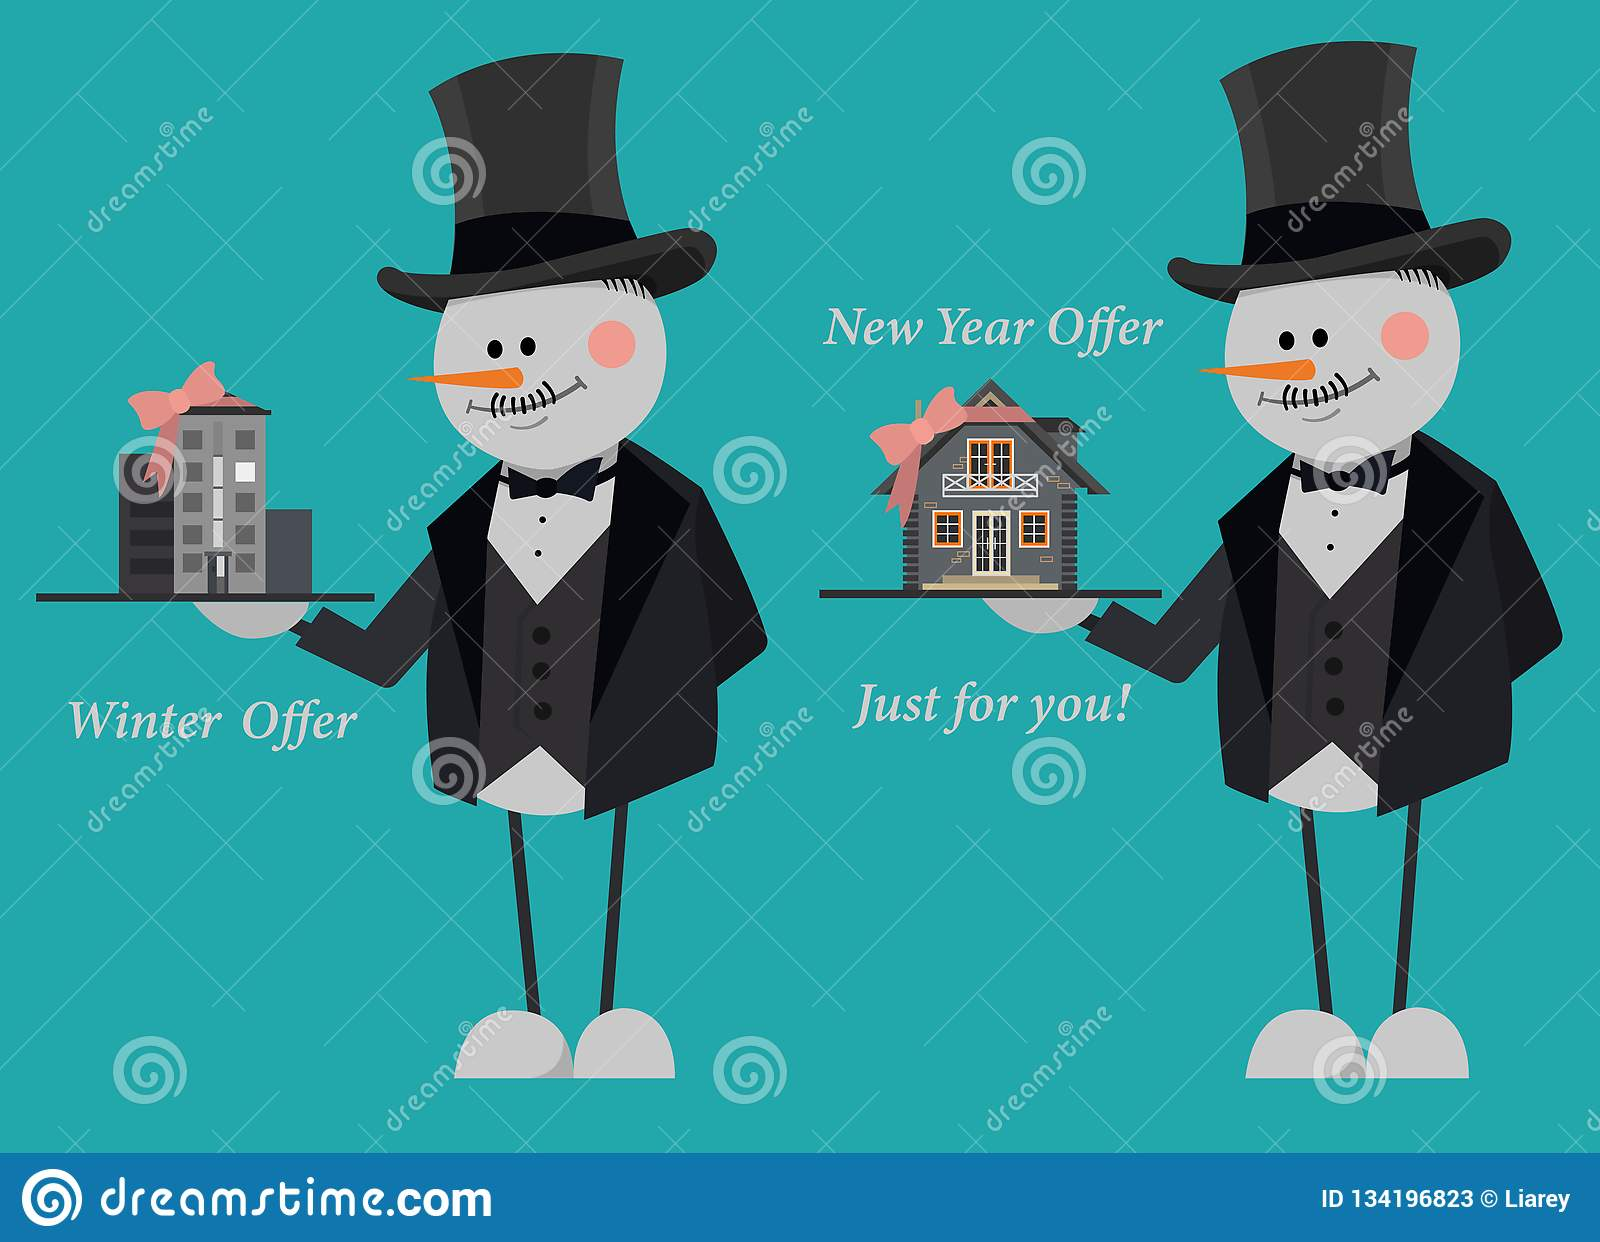 Snowmen in suits and top hats offering a new flat and country house just for you. New Year Offer.